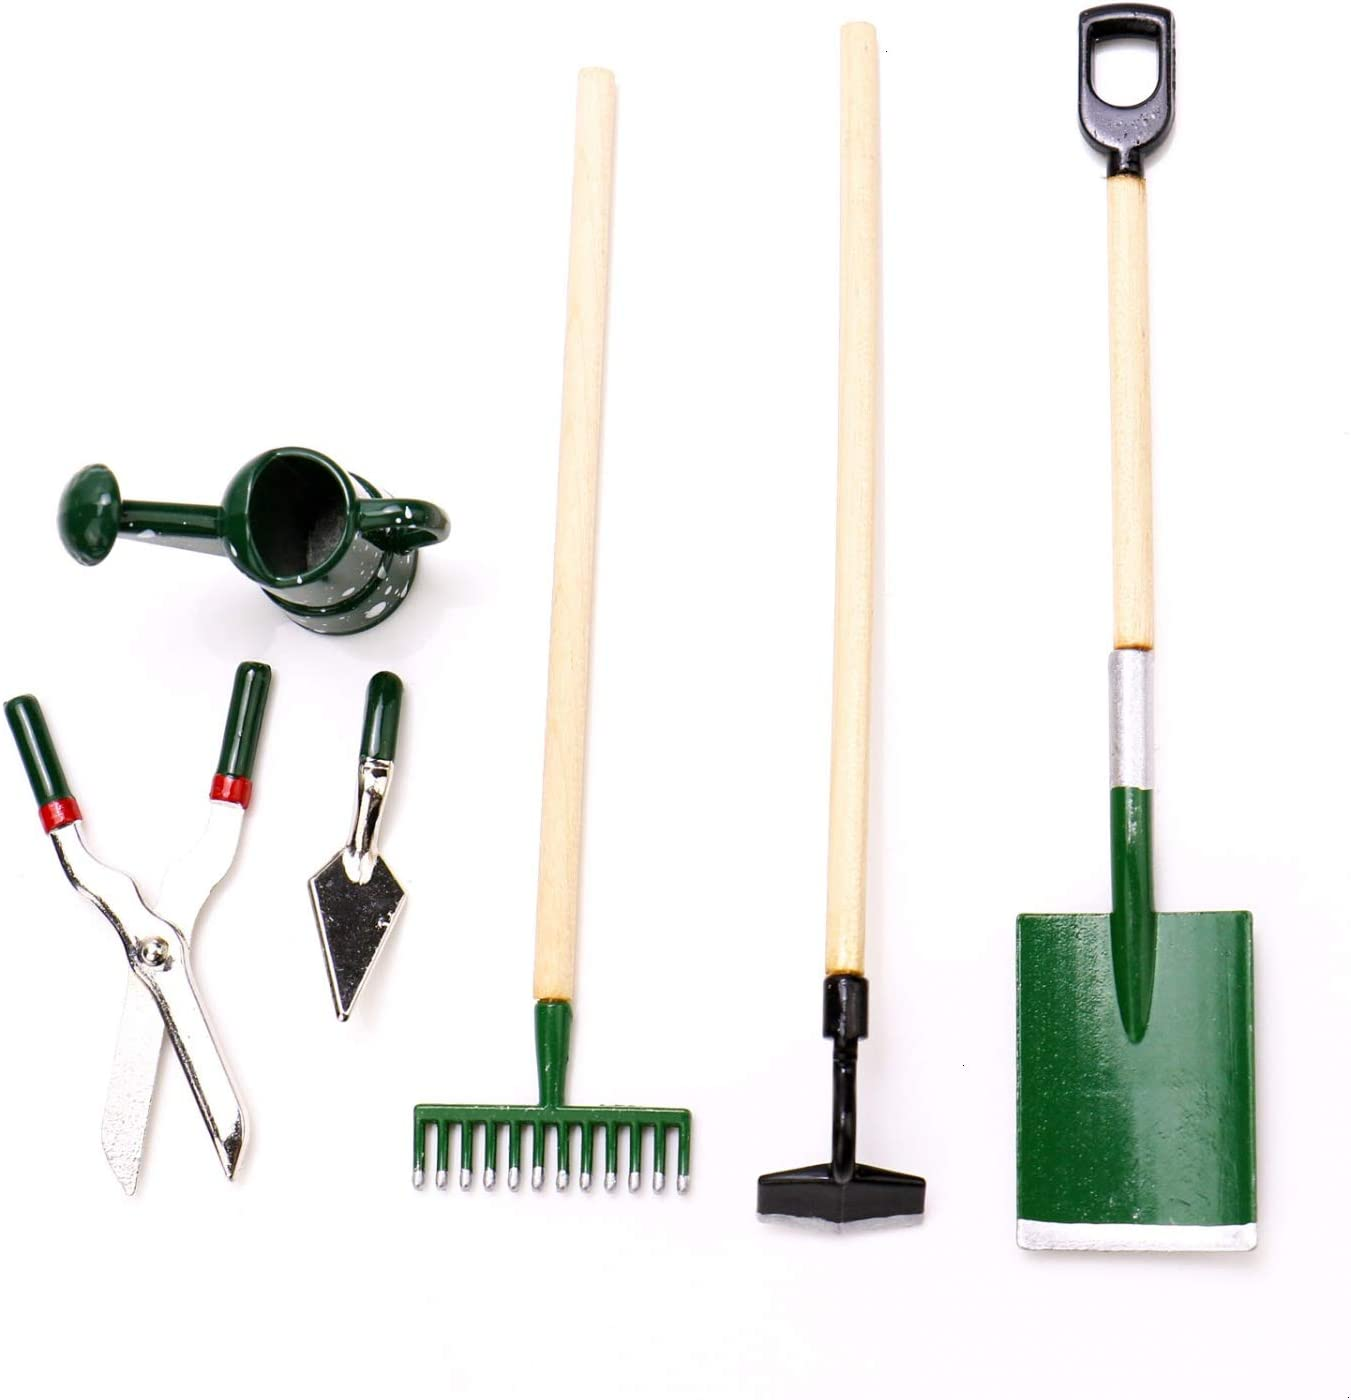 JETEHO Set of 6 Miniature Dollhouse Working Accessories for Doll House or Garden Scenery Model(3 x Garden Tools +1x Scissors, 1x Shovel, 1xWatering Can)